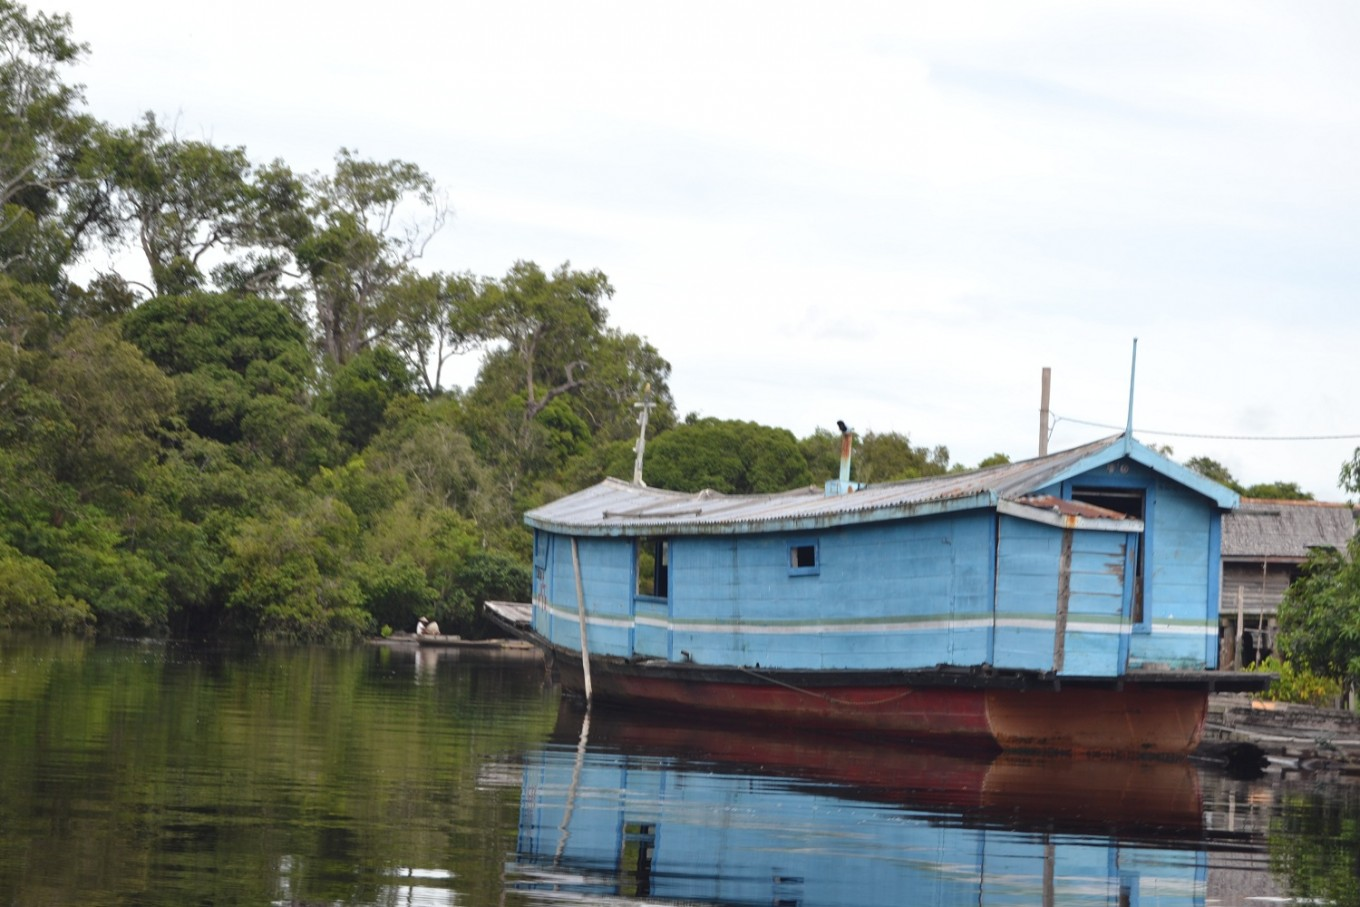 West Kalimantan expedition set to explore Indonesia's longest river